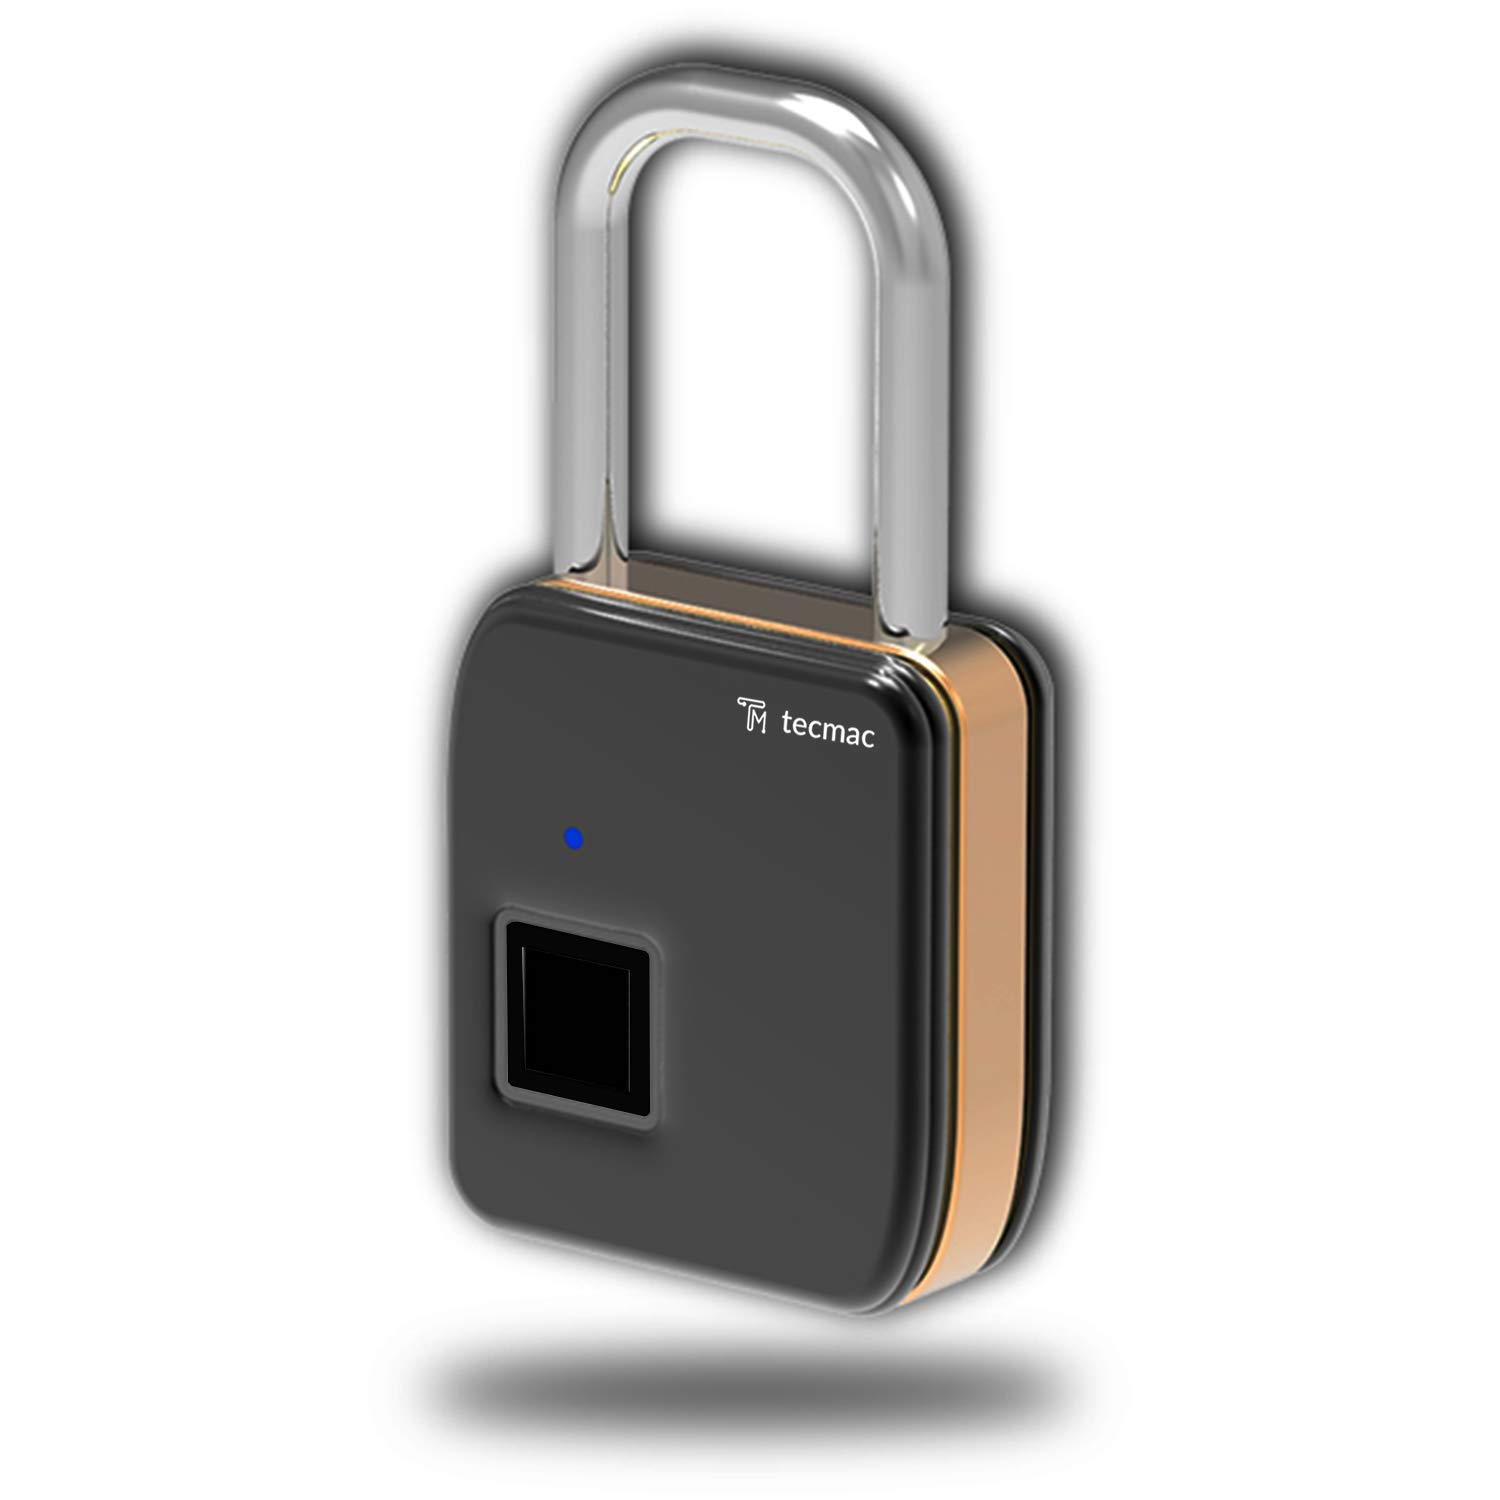 TecMac Mini Electronic Smart Fingerprint Padlock, Zinc Alloy with Stainless Steel Waterproof Lock, Suitable for House Door, Backpack, Suitcase, Bike, Gym, Office and More (Black)